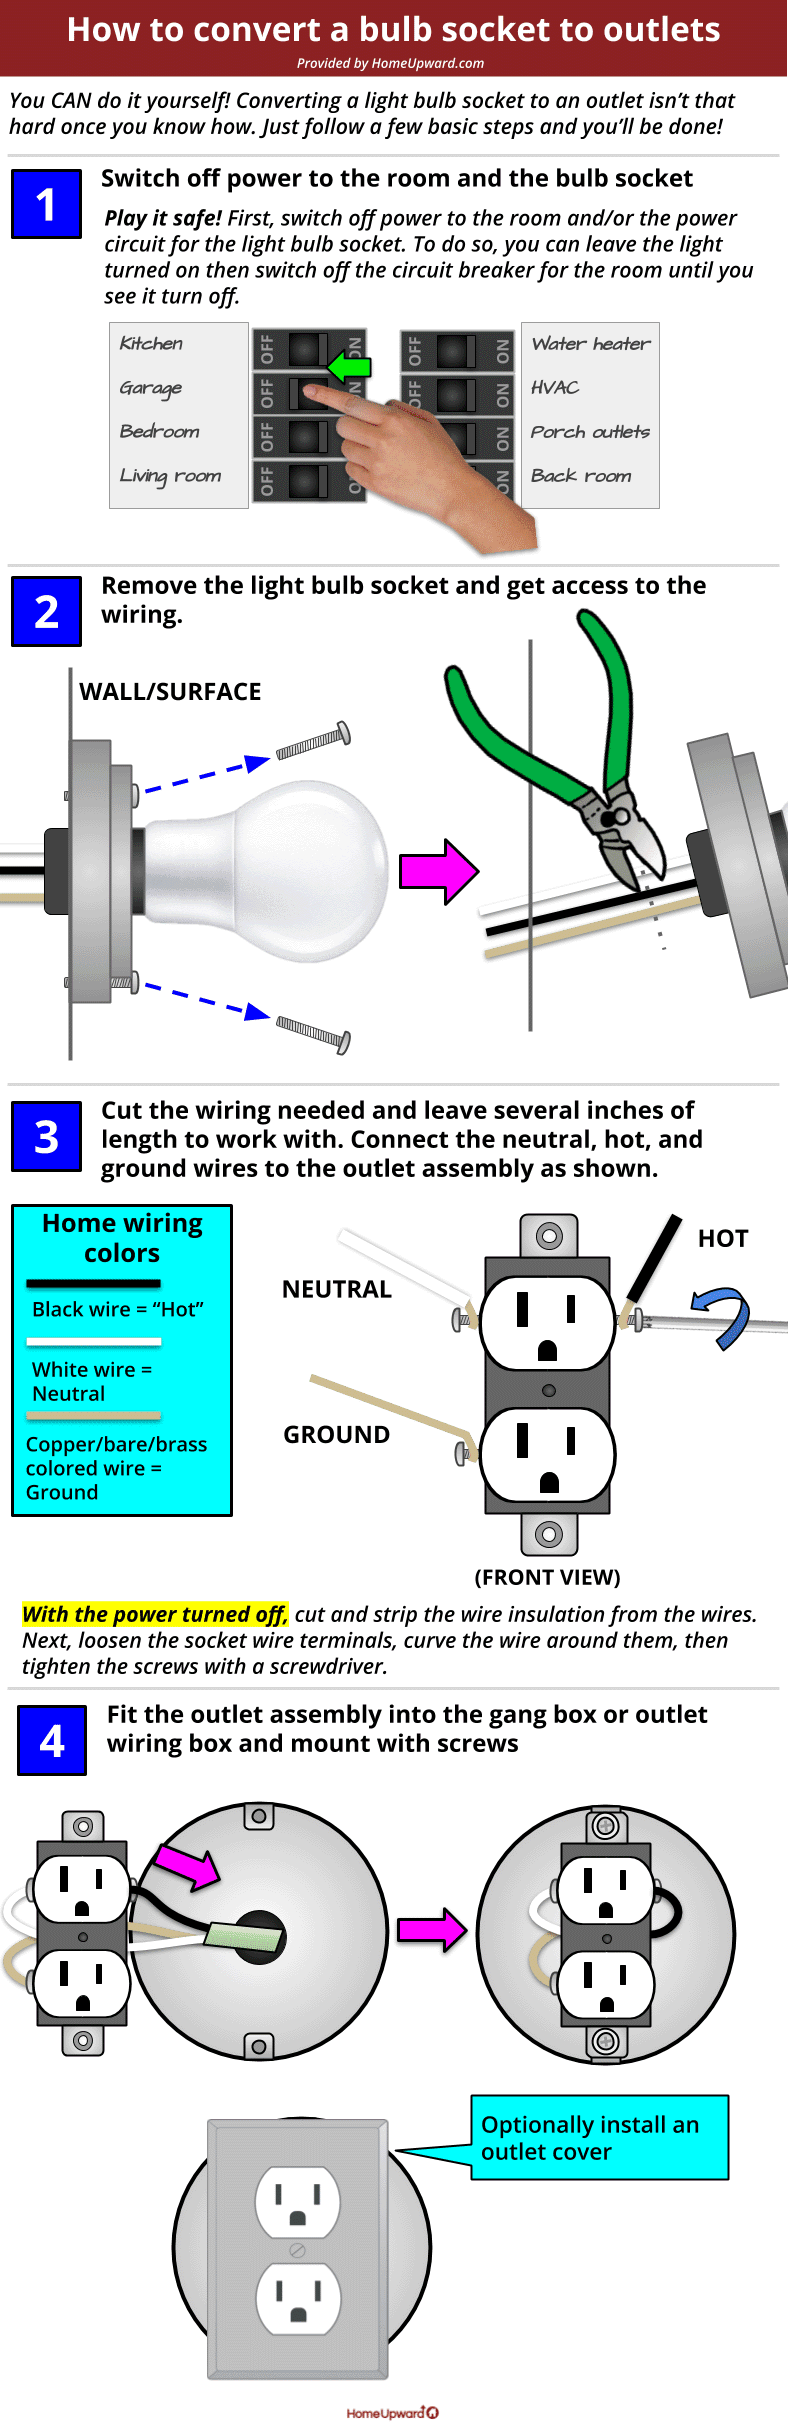 How to change a light bulb socket to outlet diagram